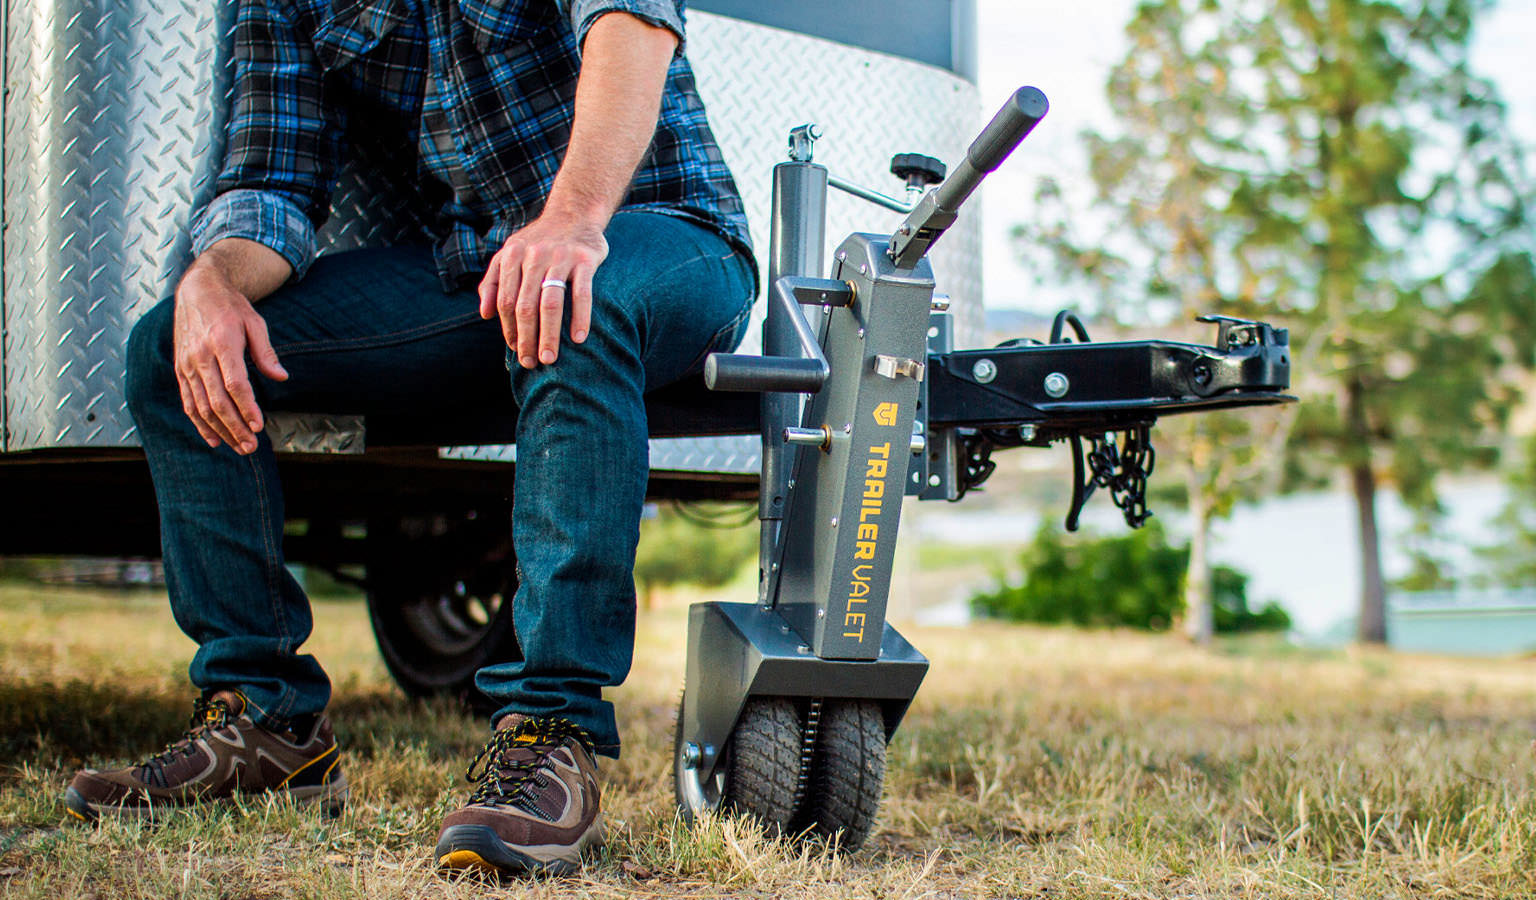 Save up to 30% on Trailer Jacks & Dollies